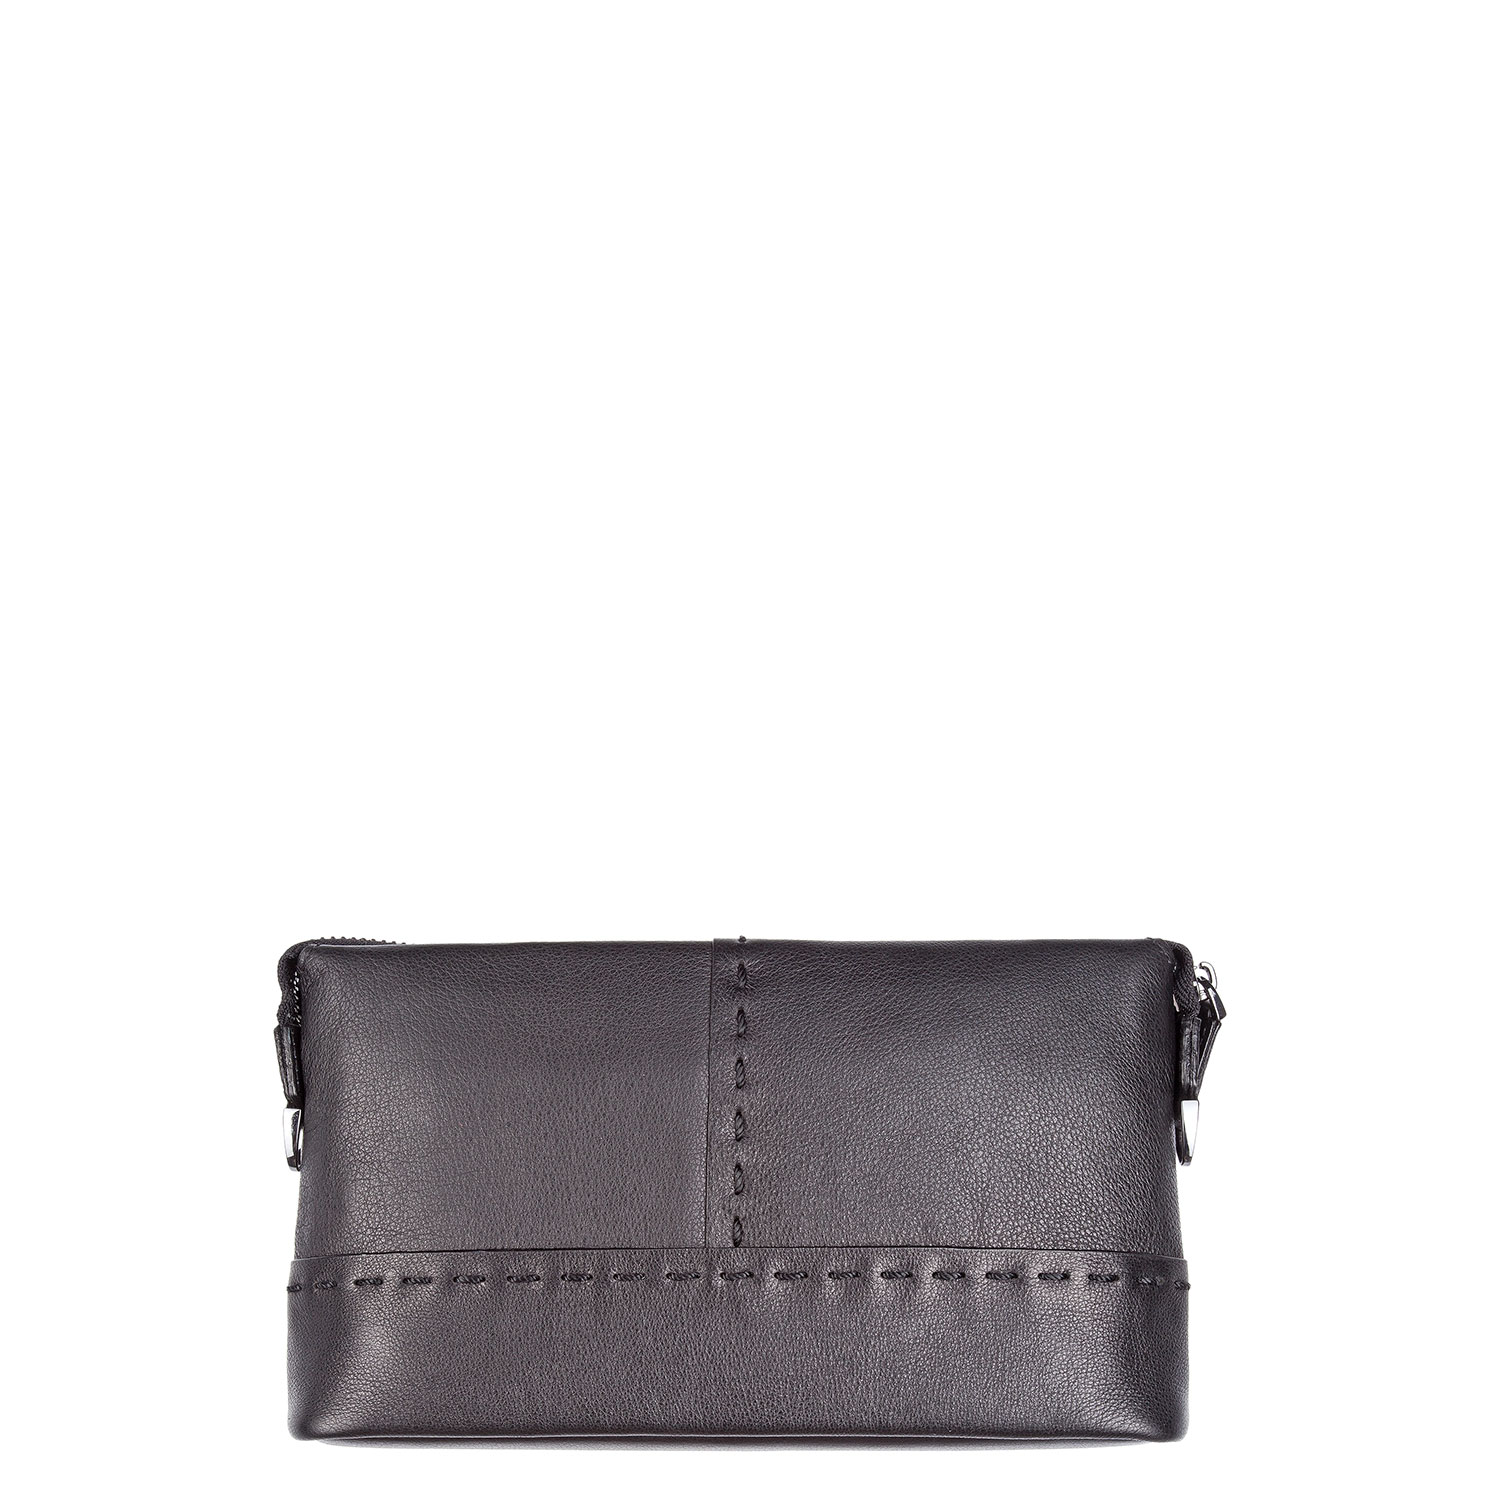 Travel wallet CARLO PAZOLINI BS-N3801-1R2